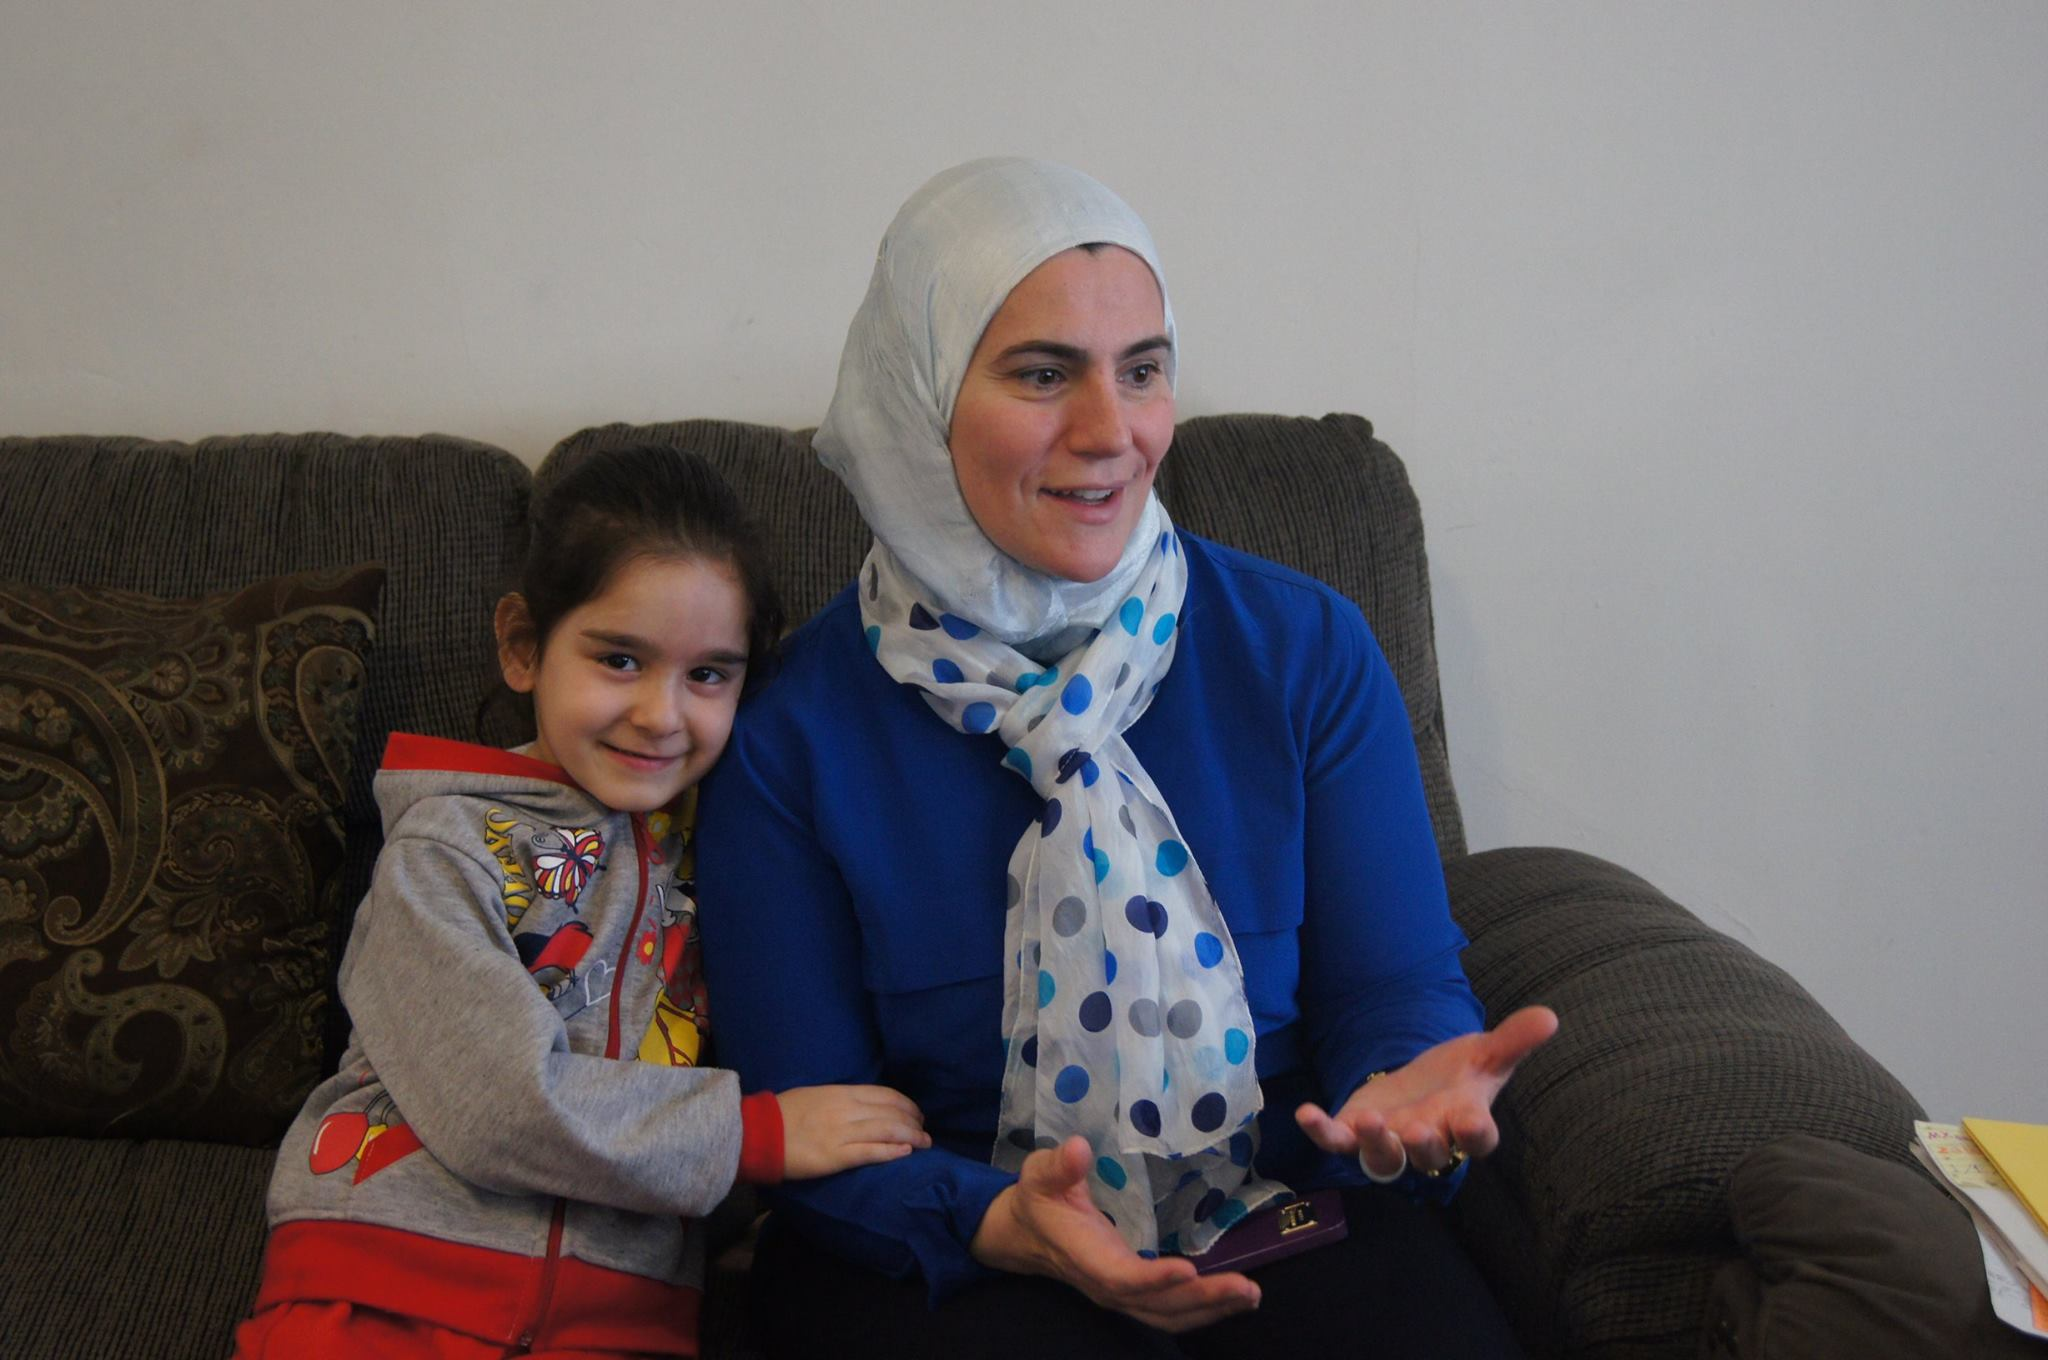 Suzanne Akhras, founder of Syrian Community Network, meets with the family to help them adjust to living in the US.